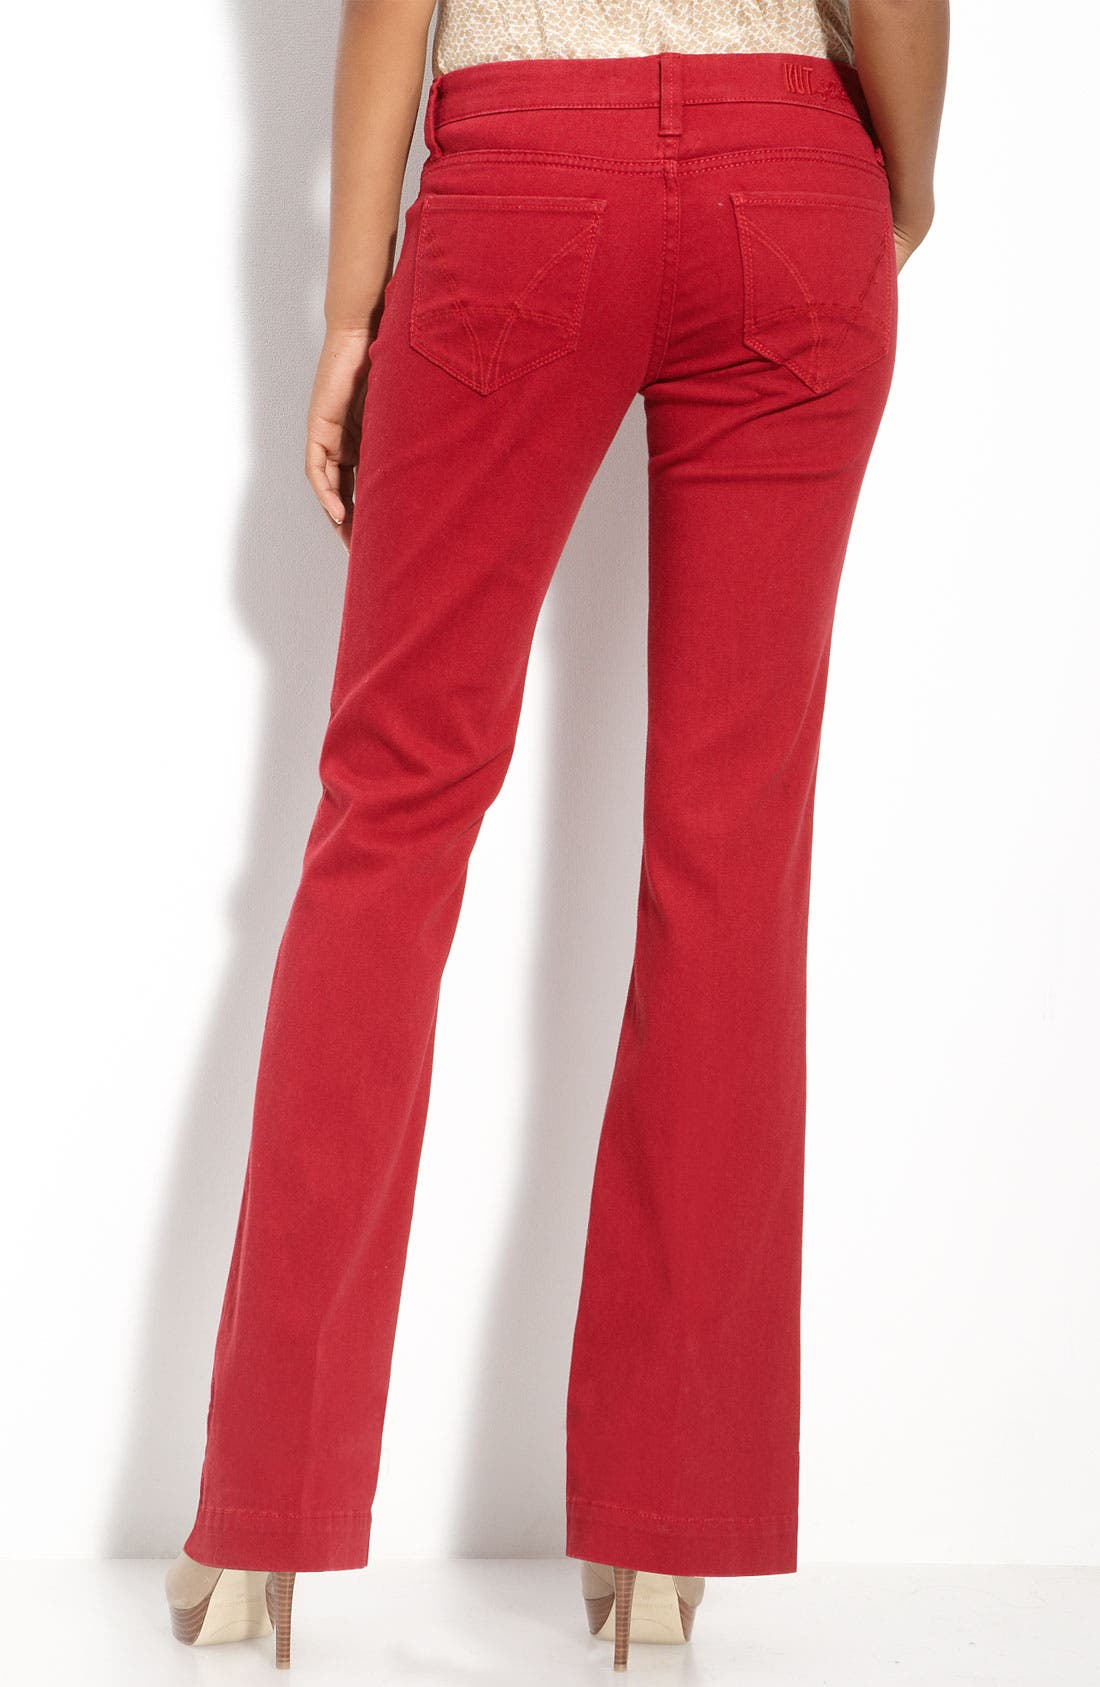 Main Image - KUT from the Kloth Colored Denim Flare Leg Jeans